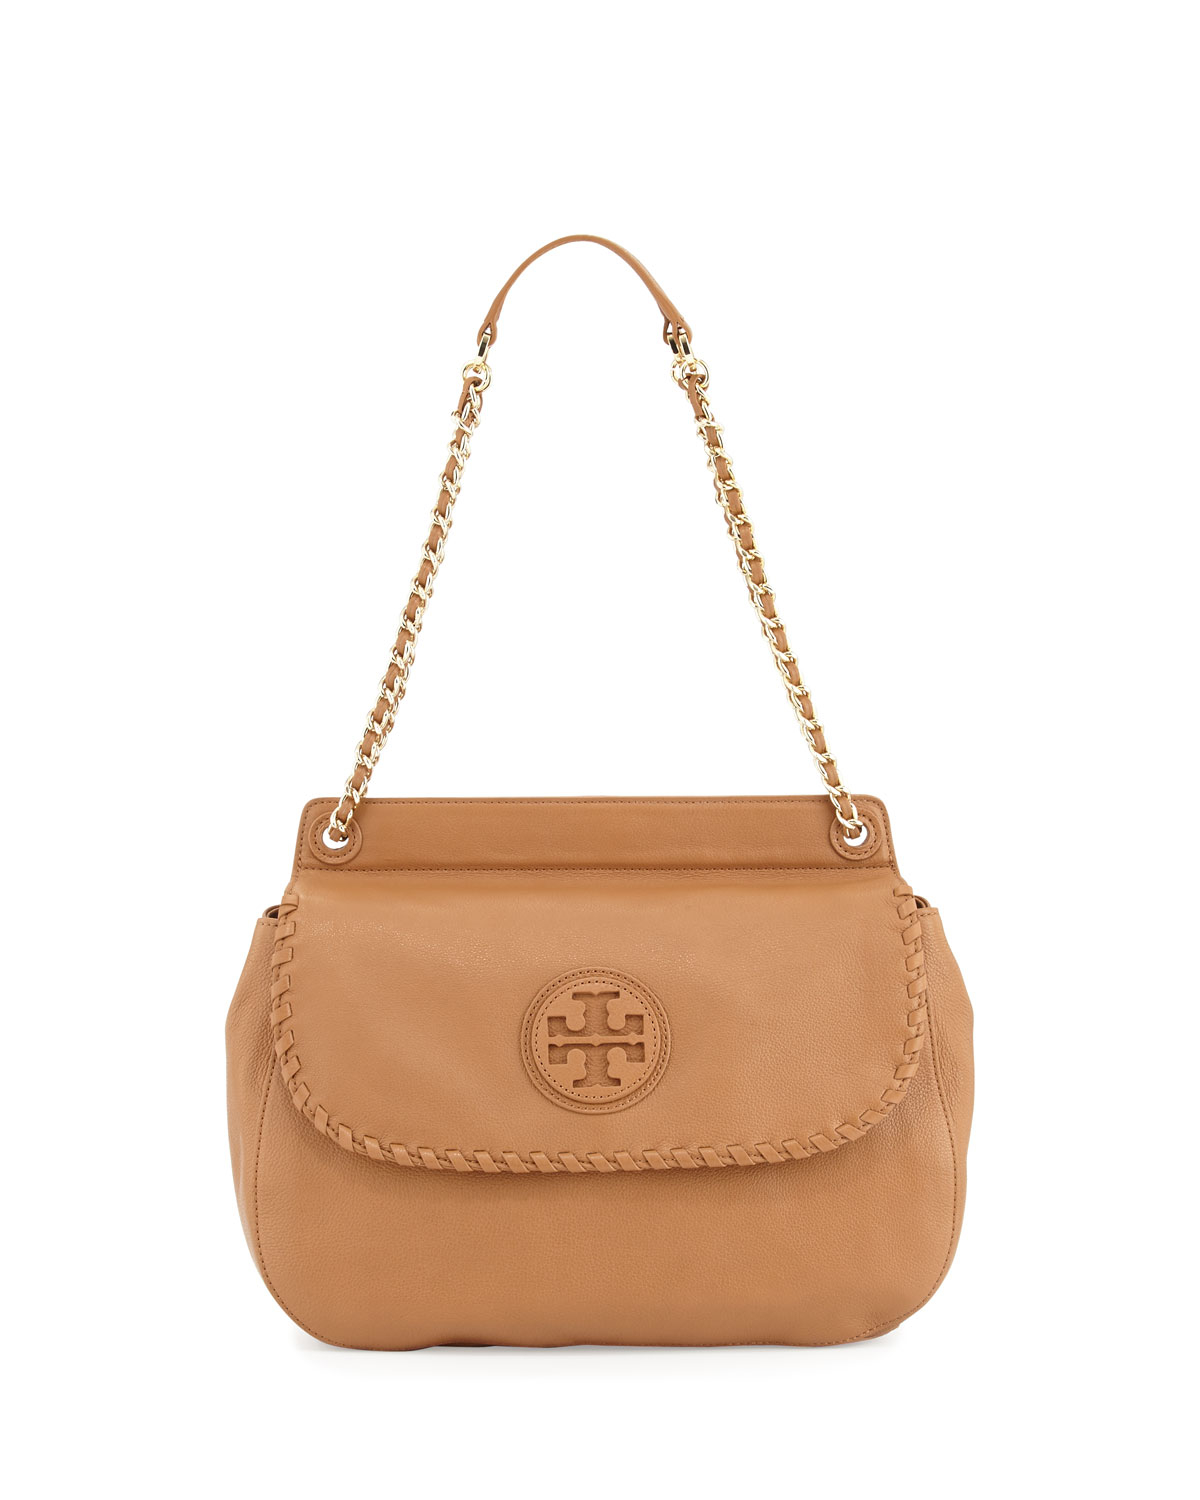 b395a040d1b0 Tory Burch Marion Leather Saddle Bag Beige in Beige